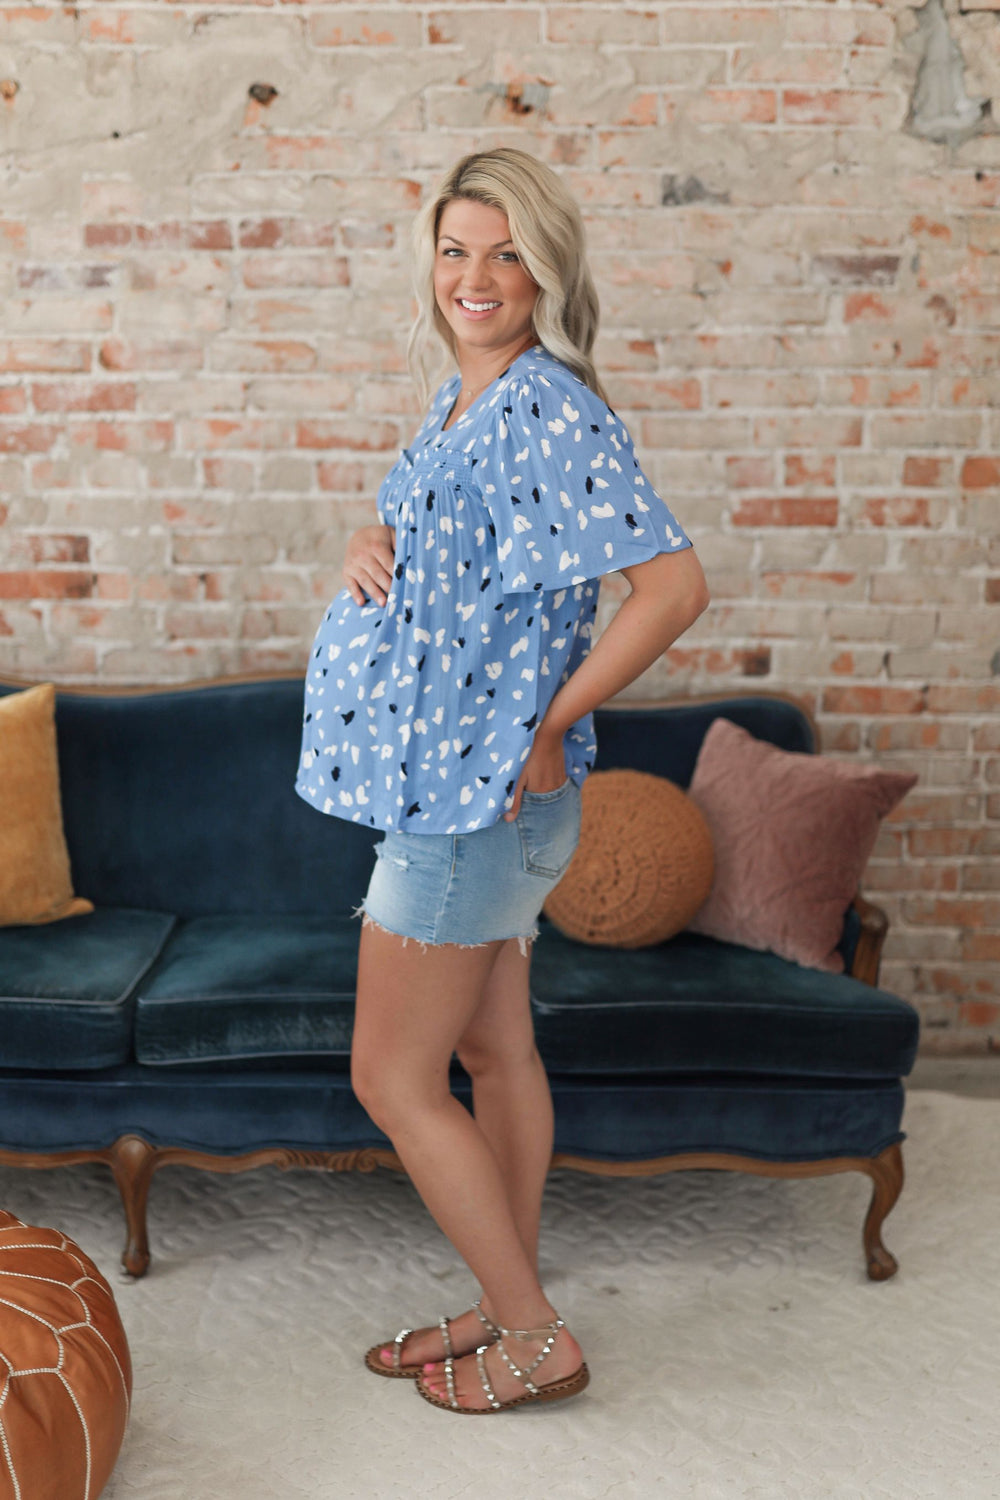 Bright Futures Blue Babydoll Top Inspired by Shelby Ditch